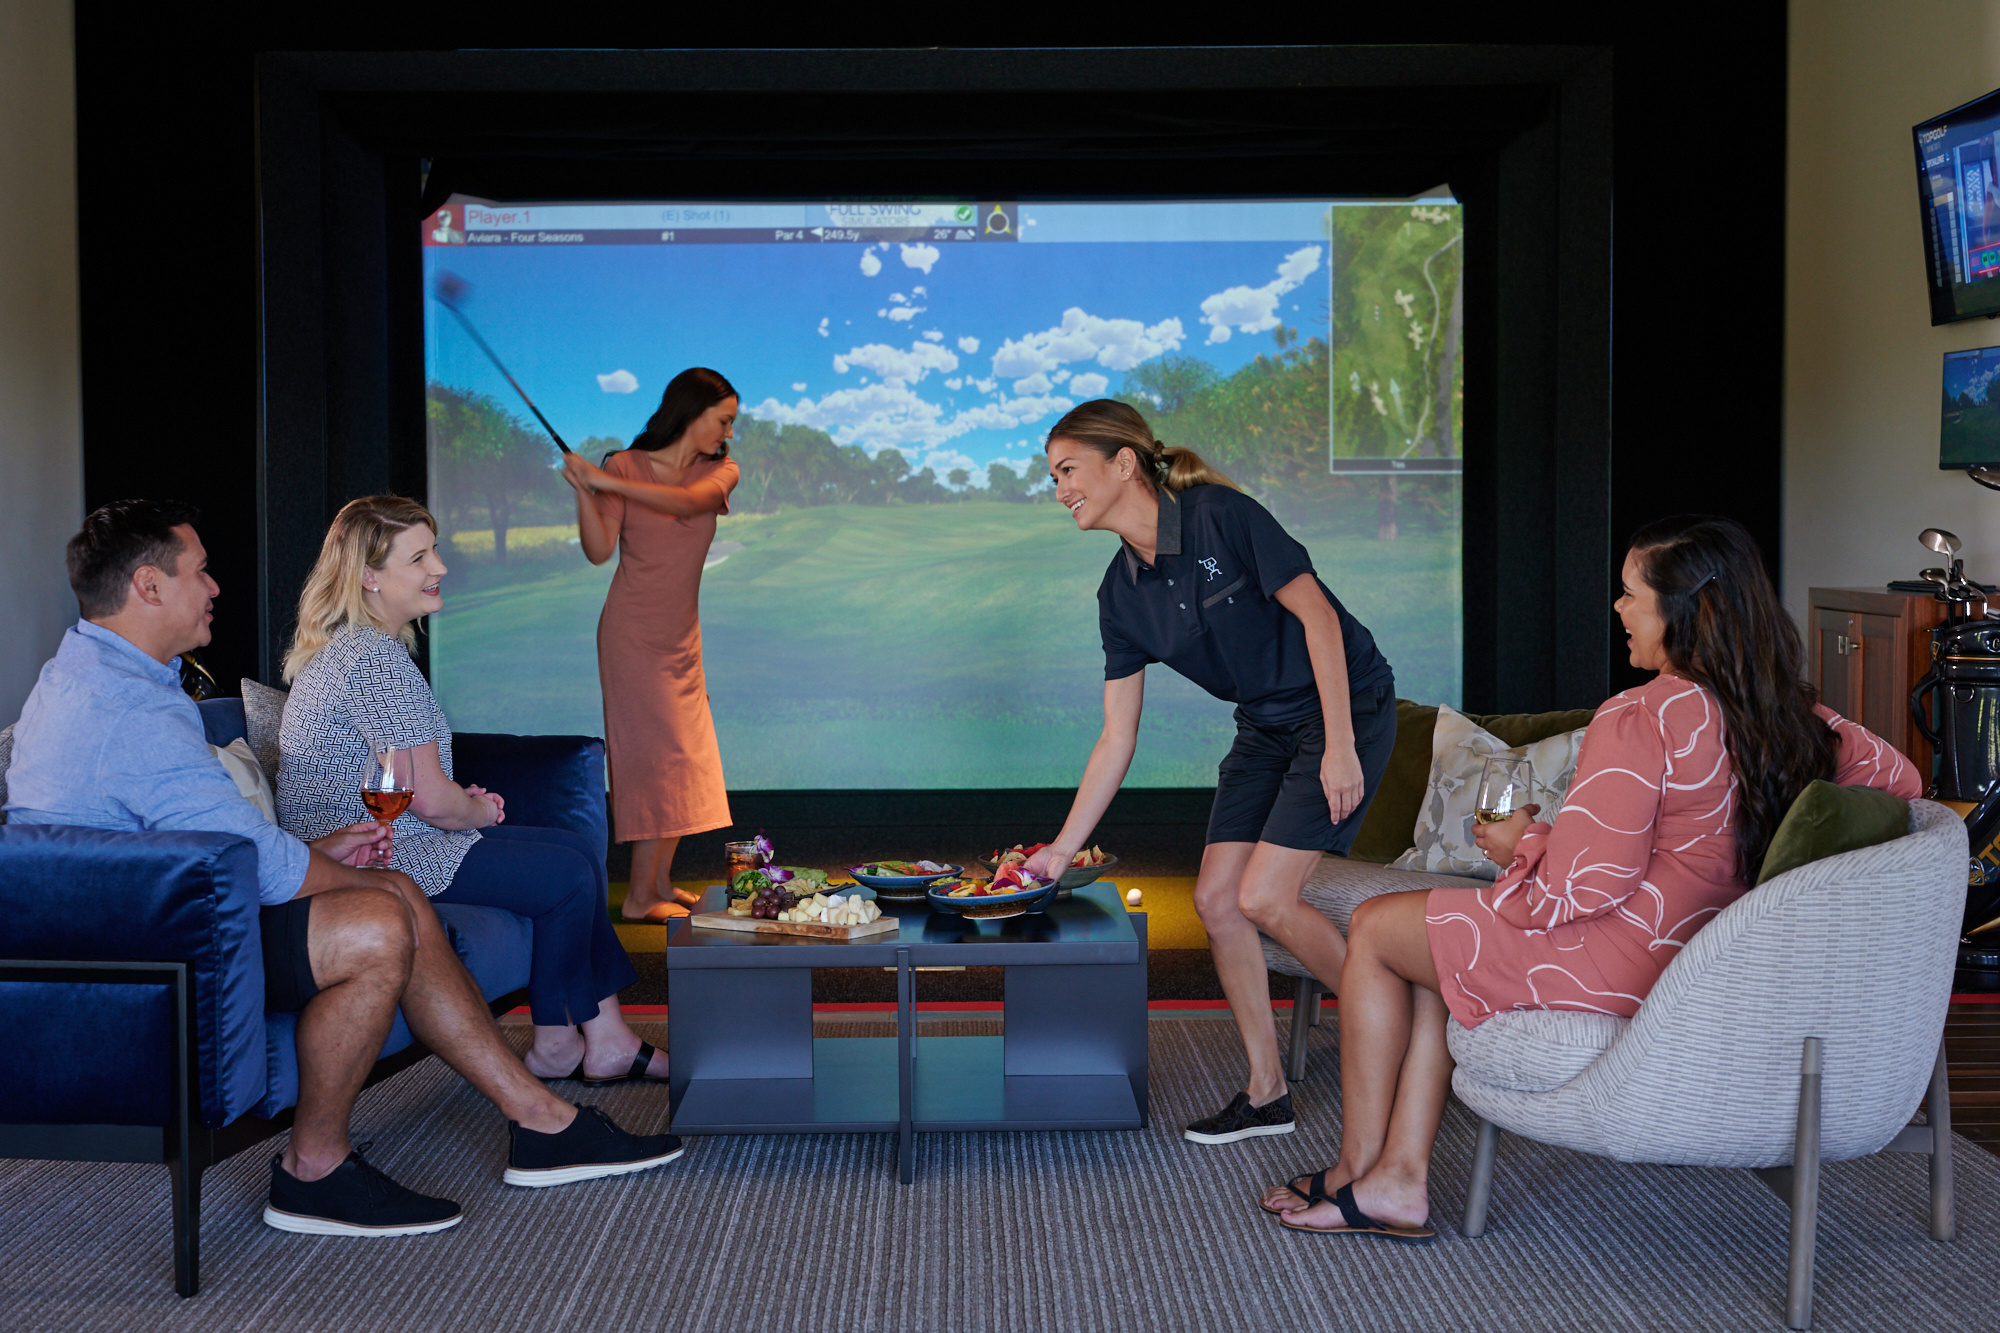 An employee places a colorful plate of food at a table in the center of the room while three guests thank her and one guest plays a virtual golf game.